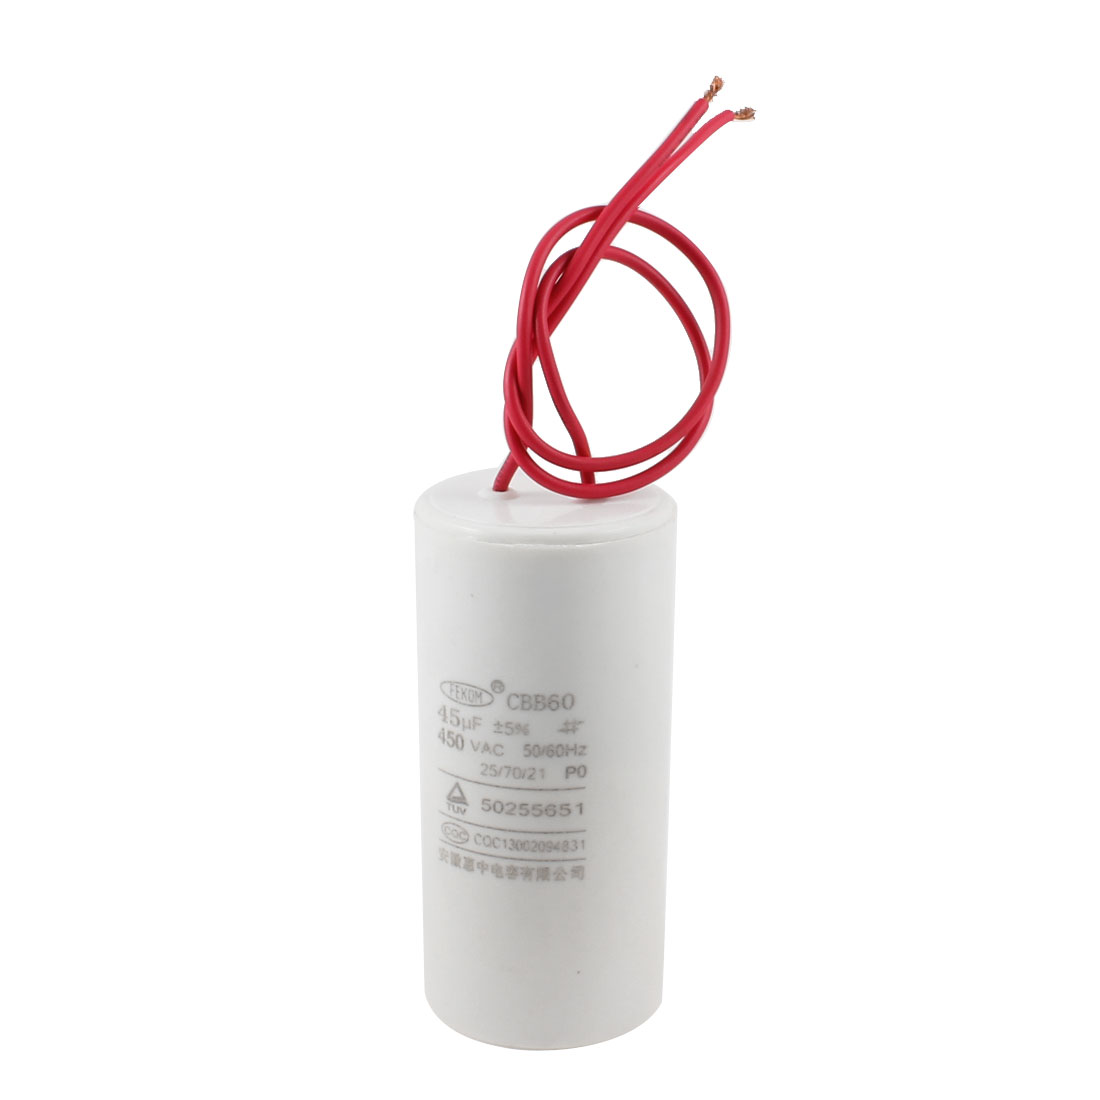 CBB60 AC 450V 45uF Cylindrical Non Polar Motor Capacitor White w 2 Wires